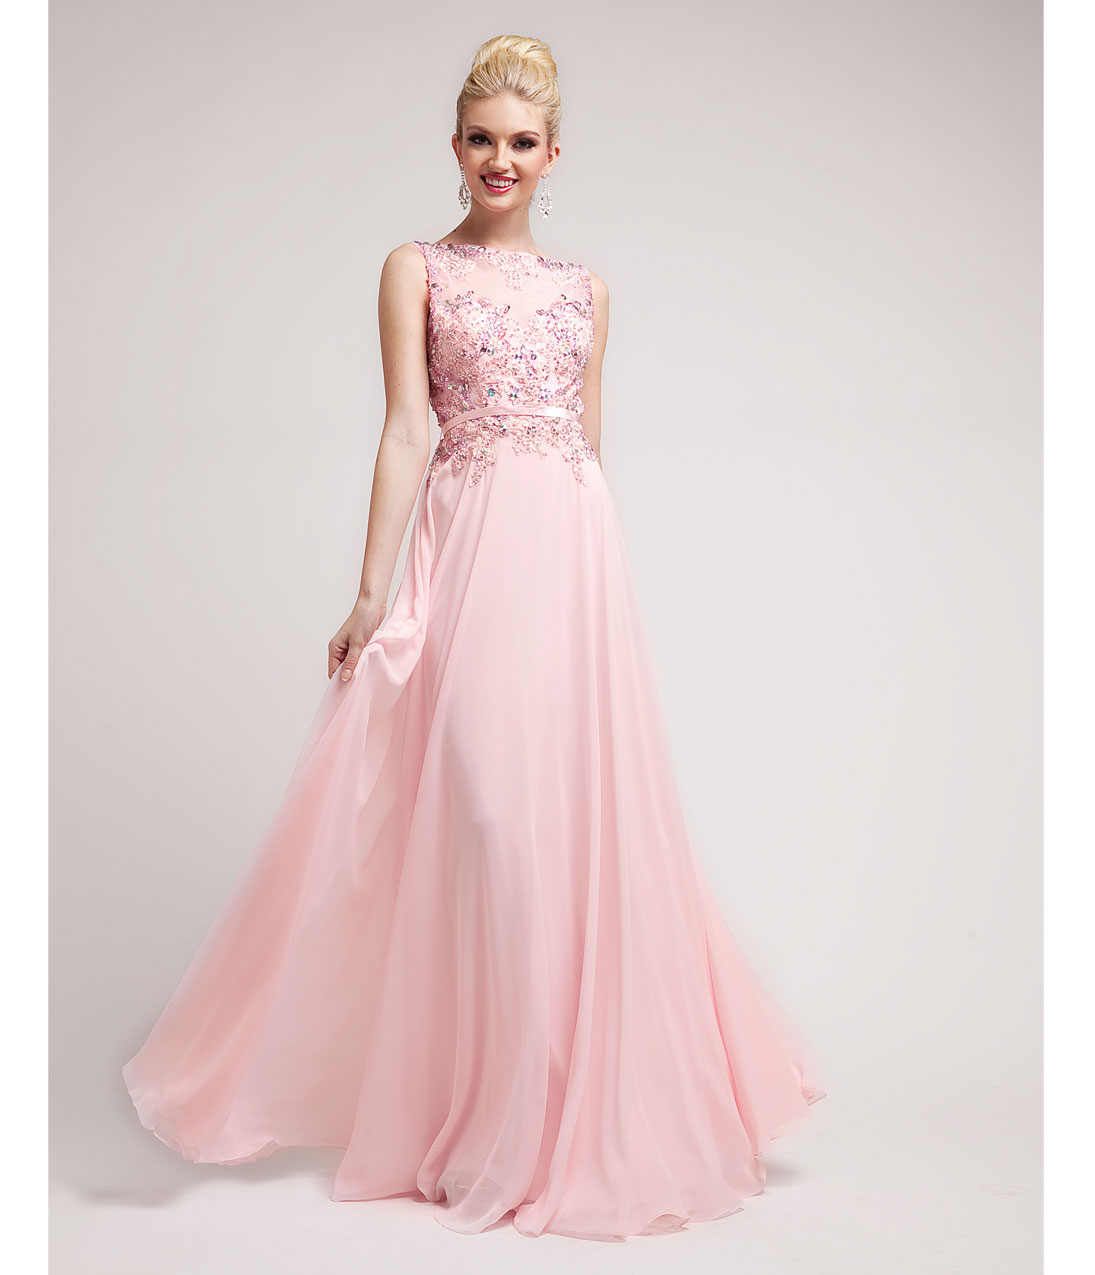 2014 Prom Dresses - Baby Pink Beaded Lace & Chiffon Gown - Unique Vintage -  Prom dresses, retro dresses, retro swimsuits